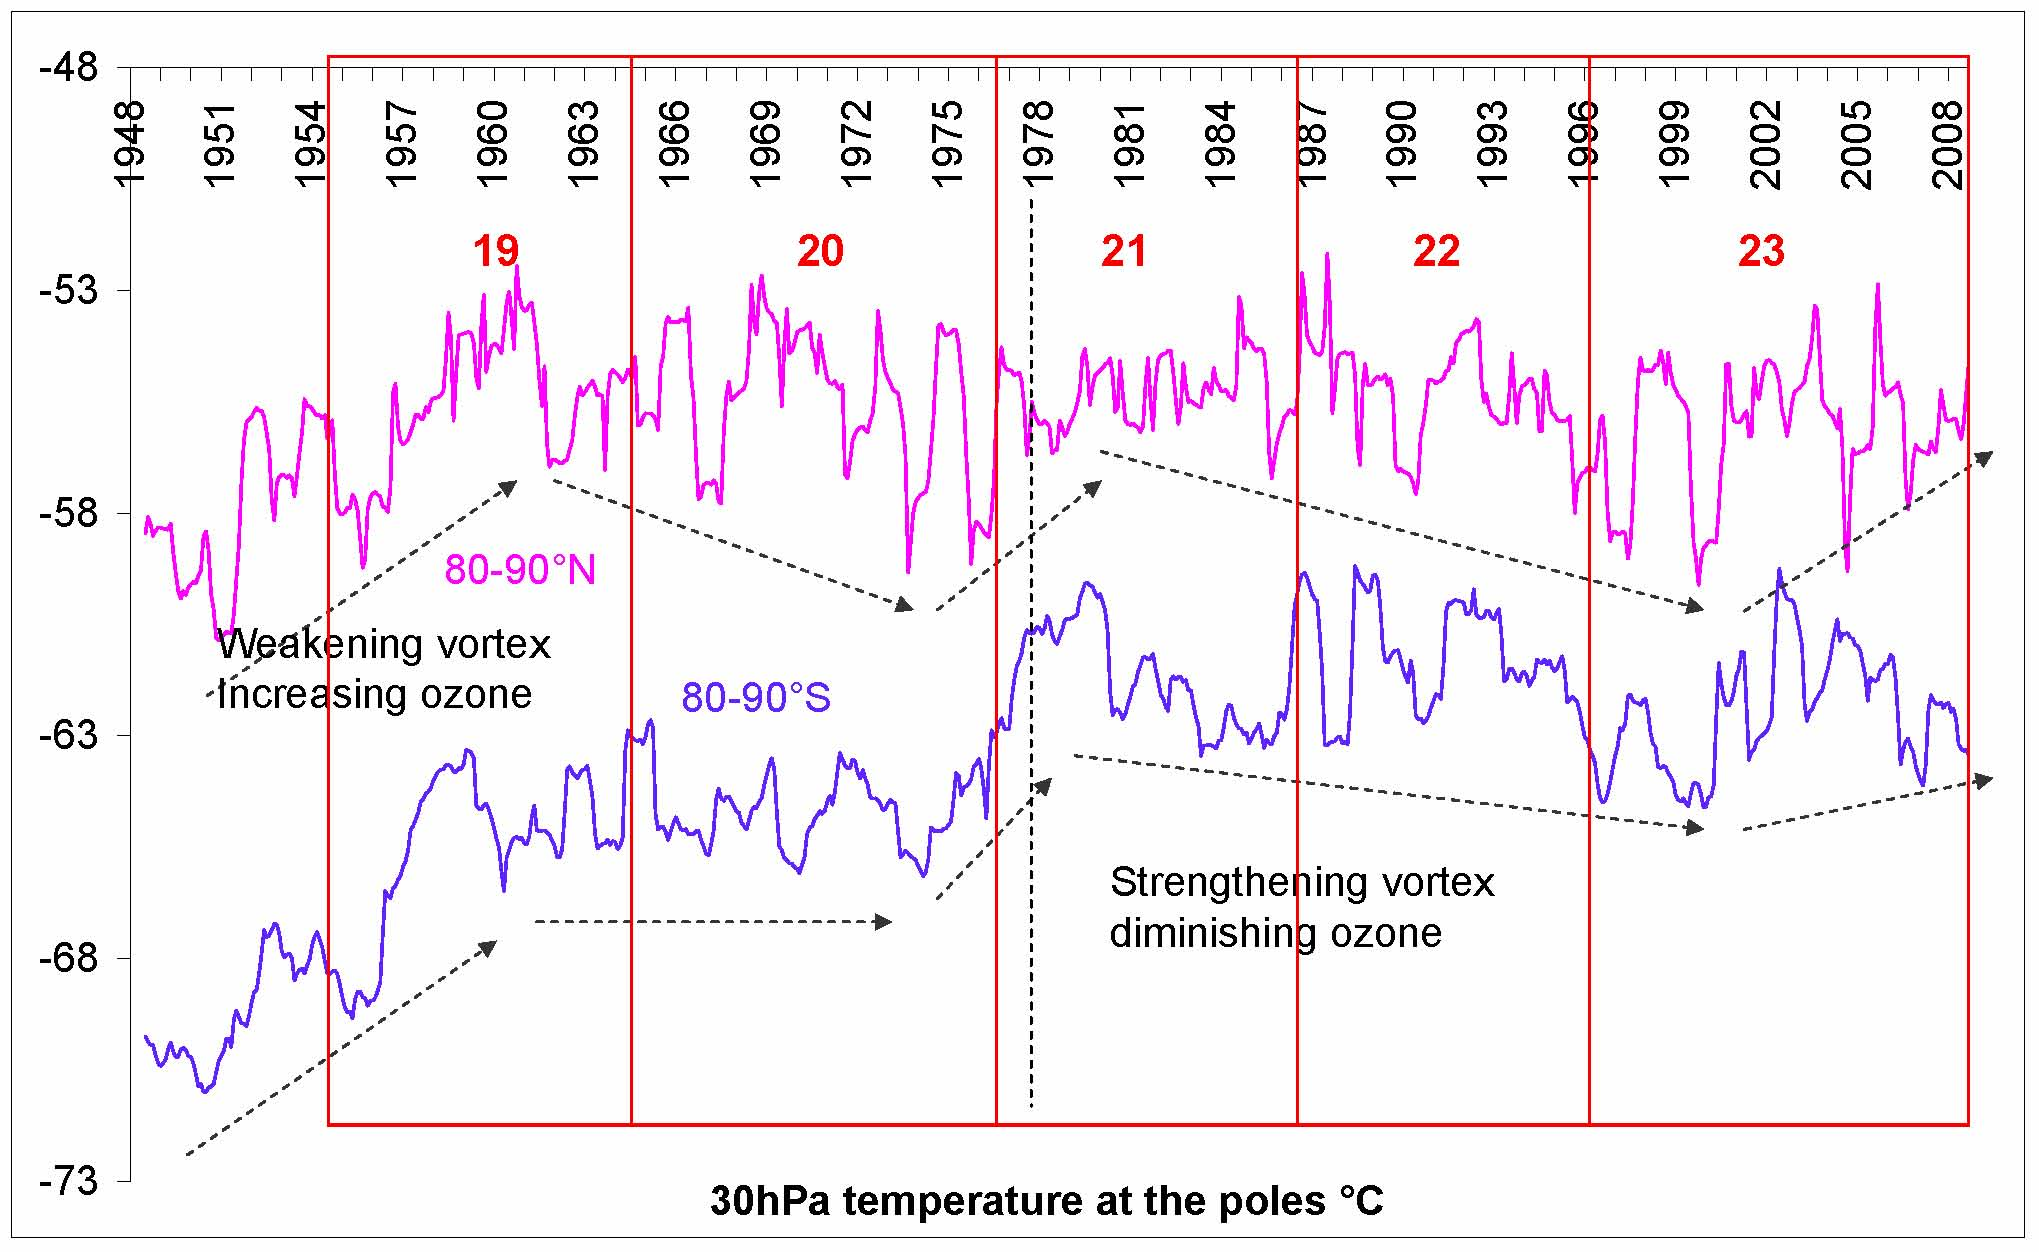 Fig. 5  Change in 30hPa temperature in the Arctic and the Antarctic